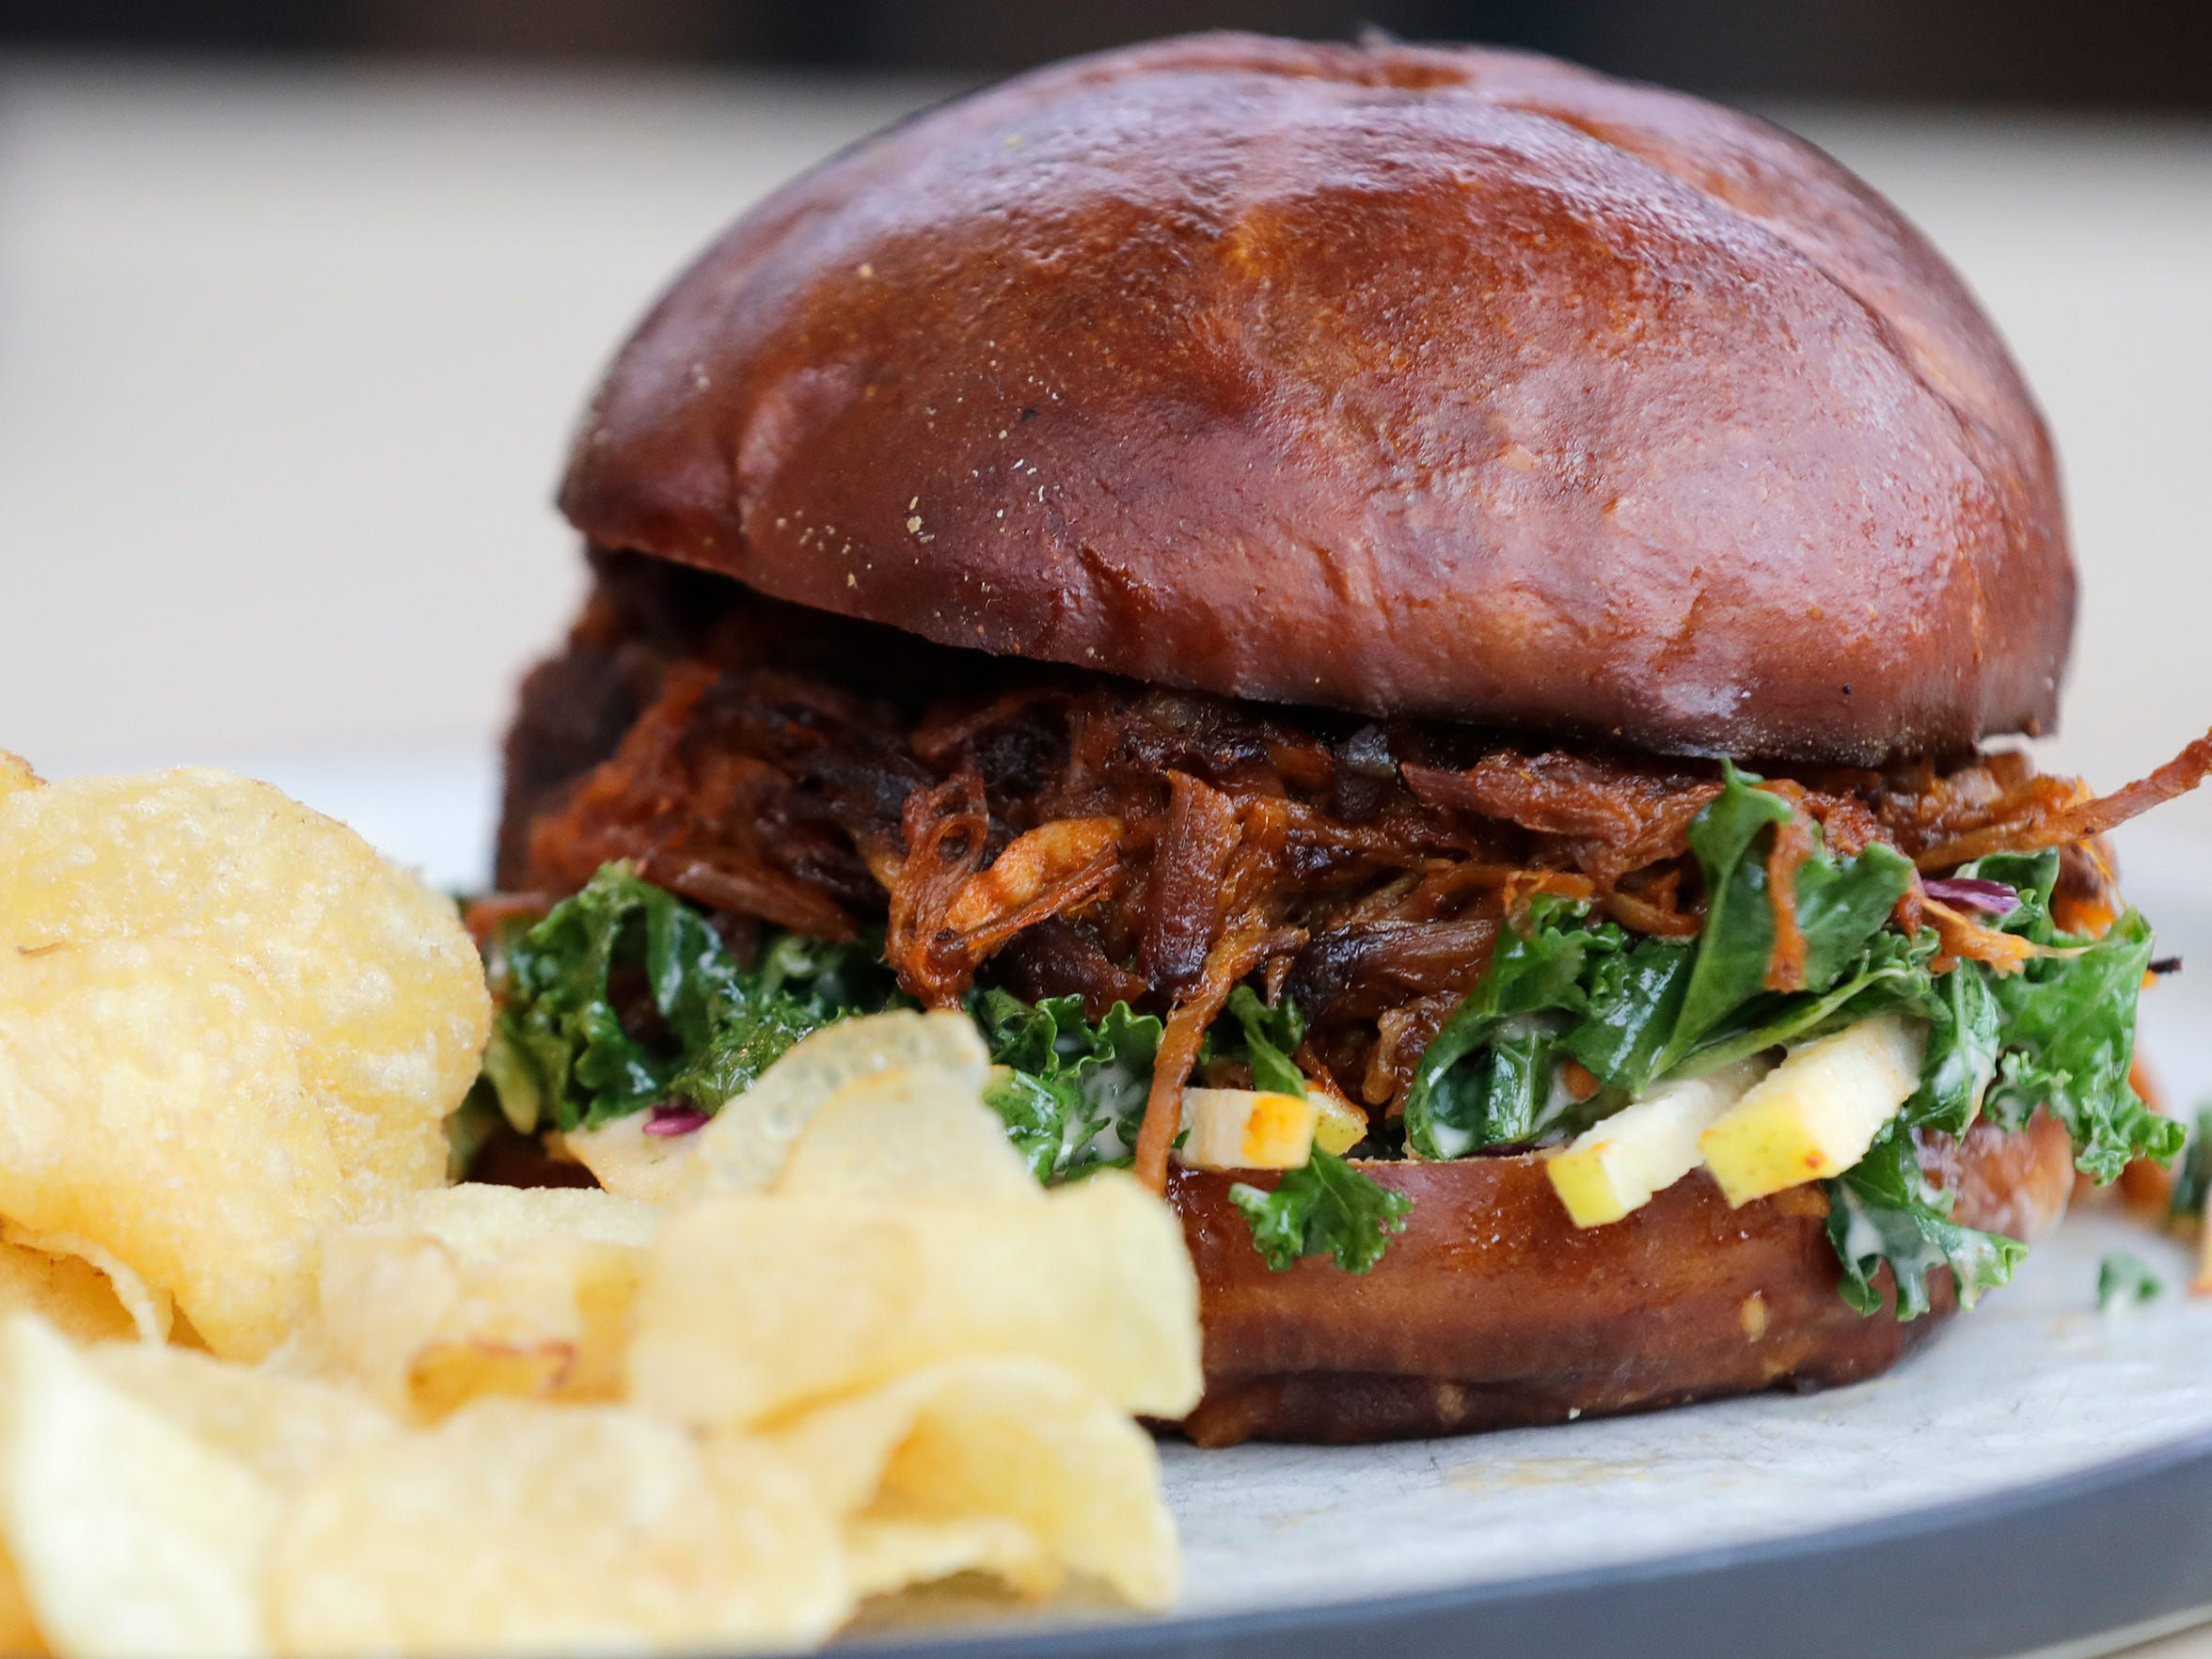 The BBQ pulled pork sandwich is shown at Hinterland